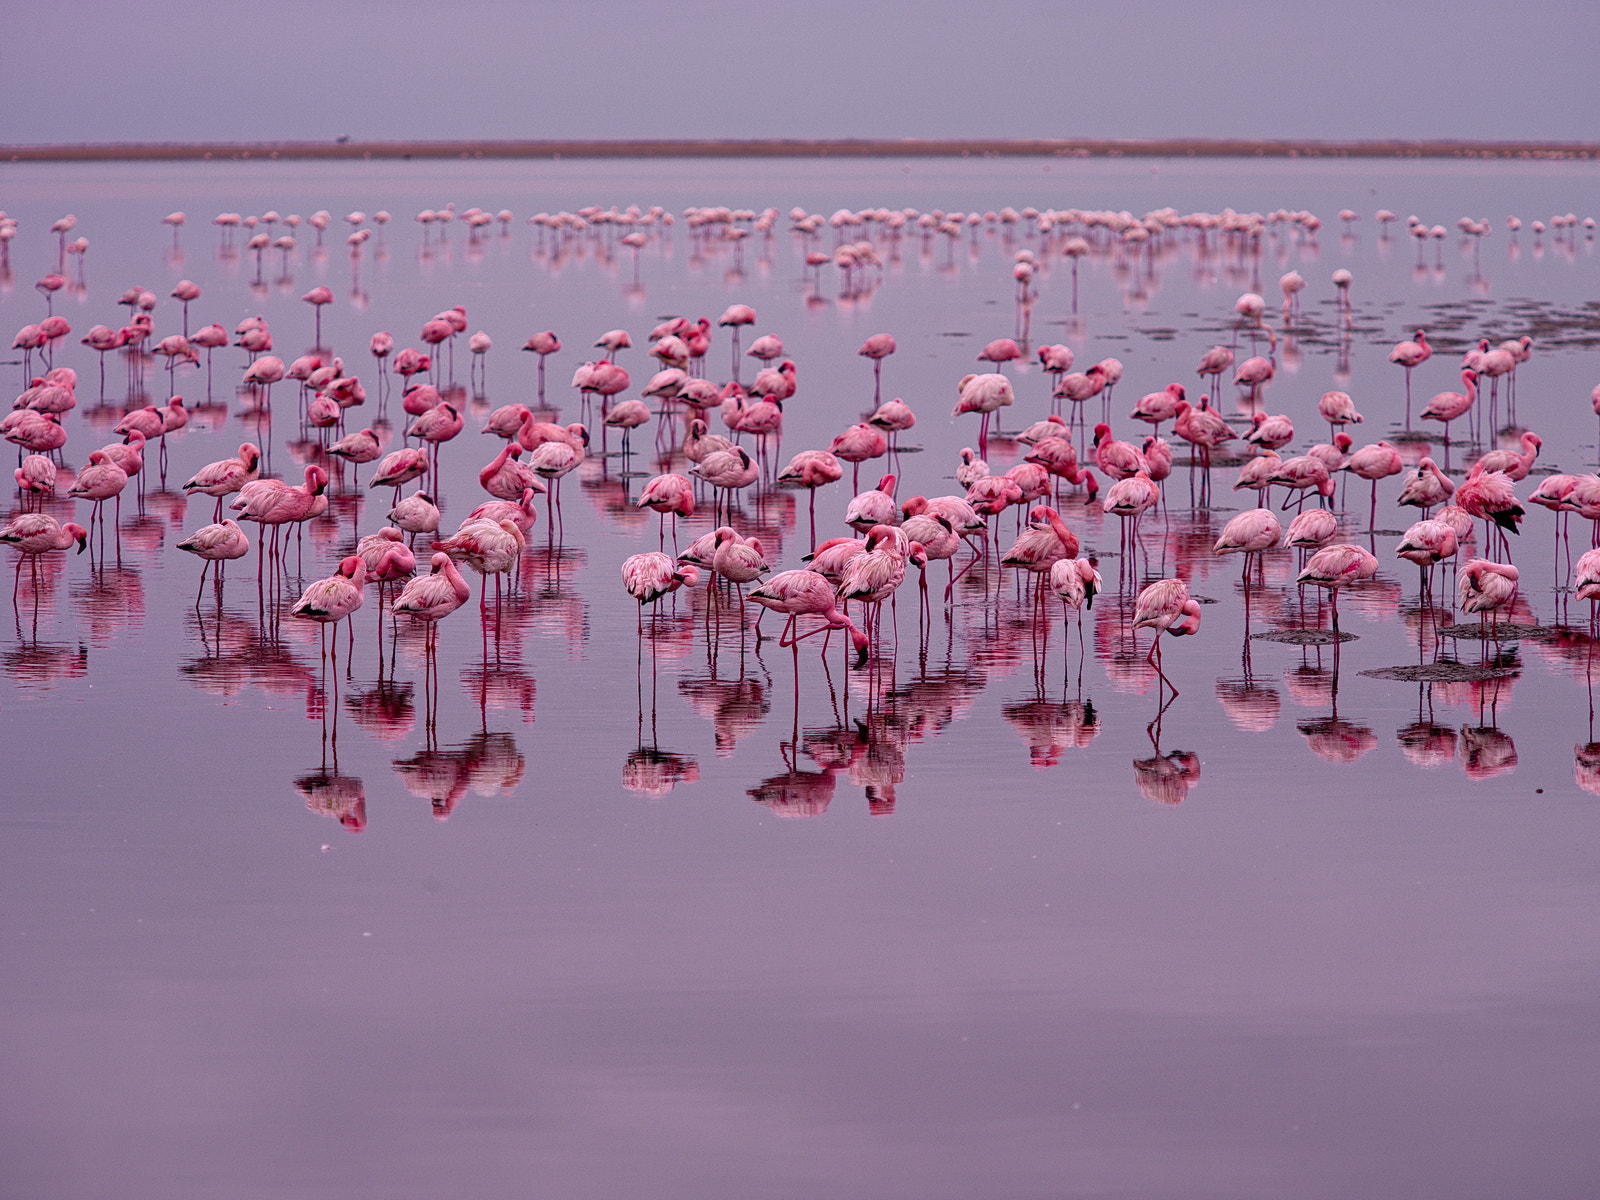 Photograph Pink World by Qwerty_BY on 500px